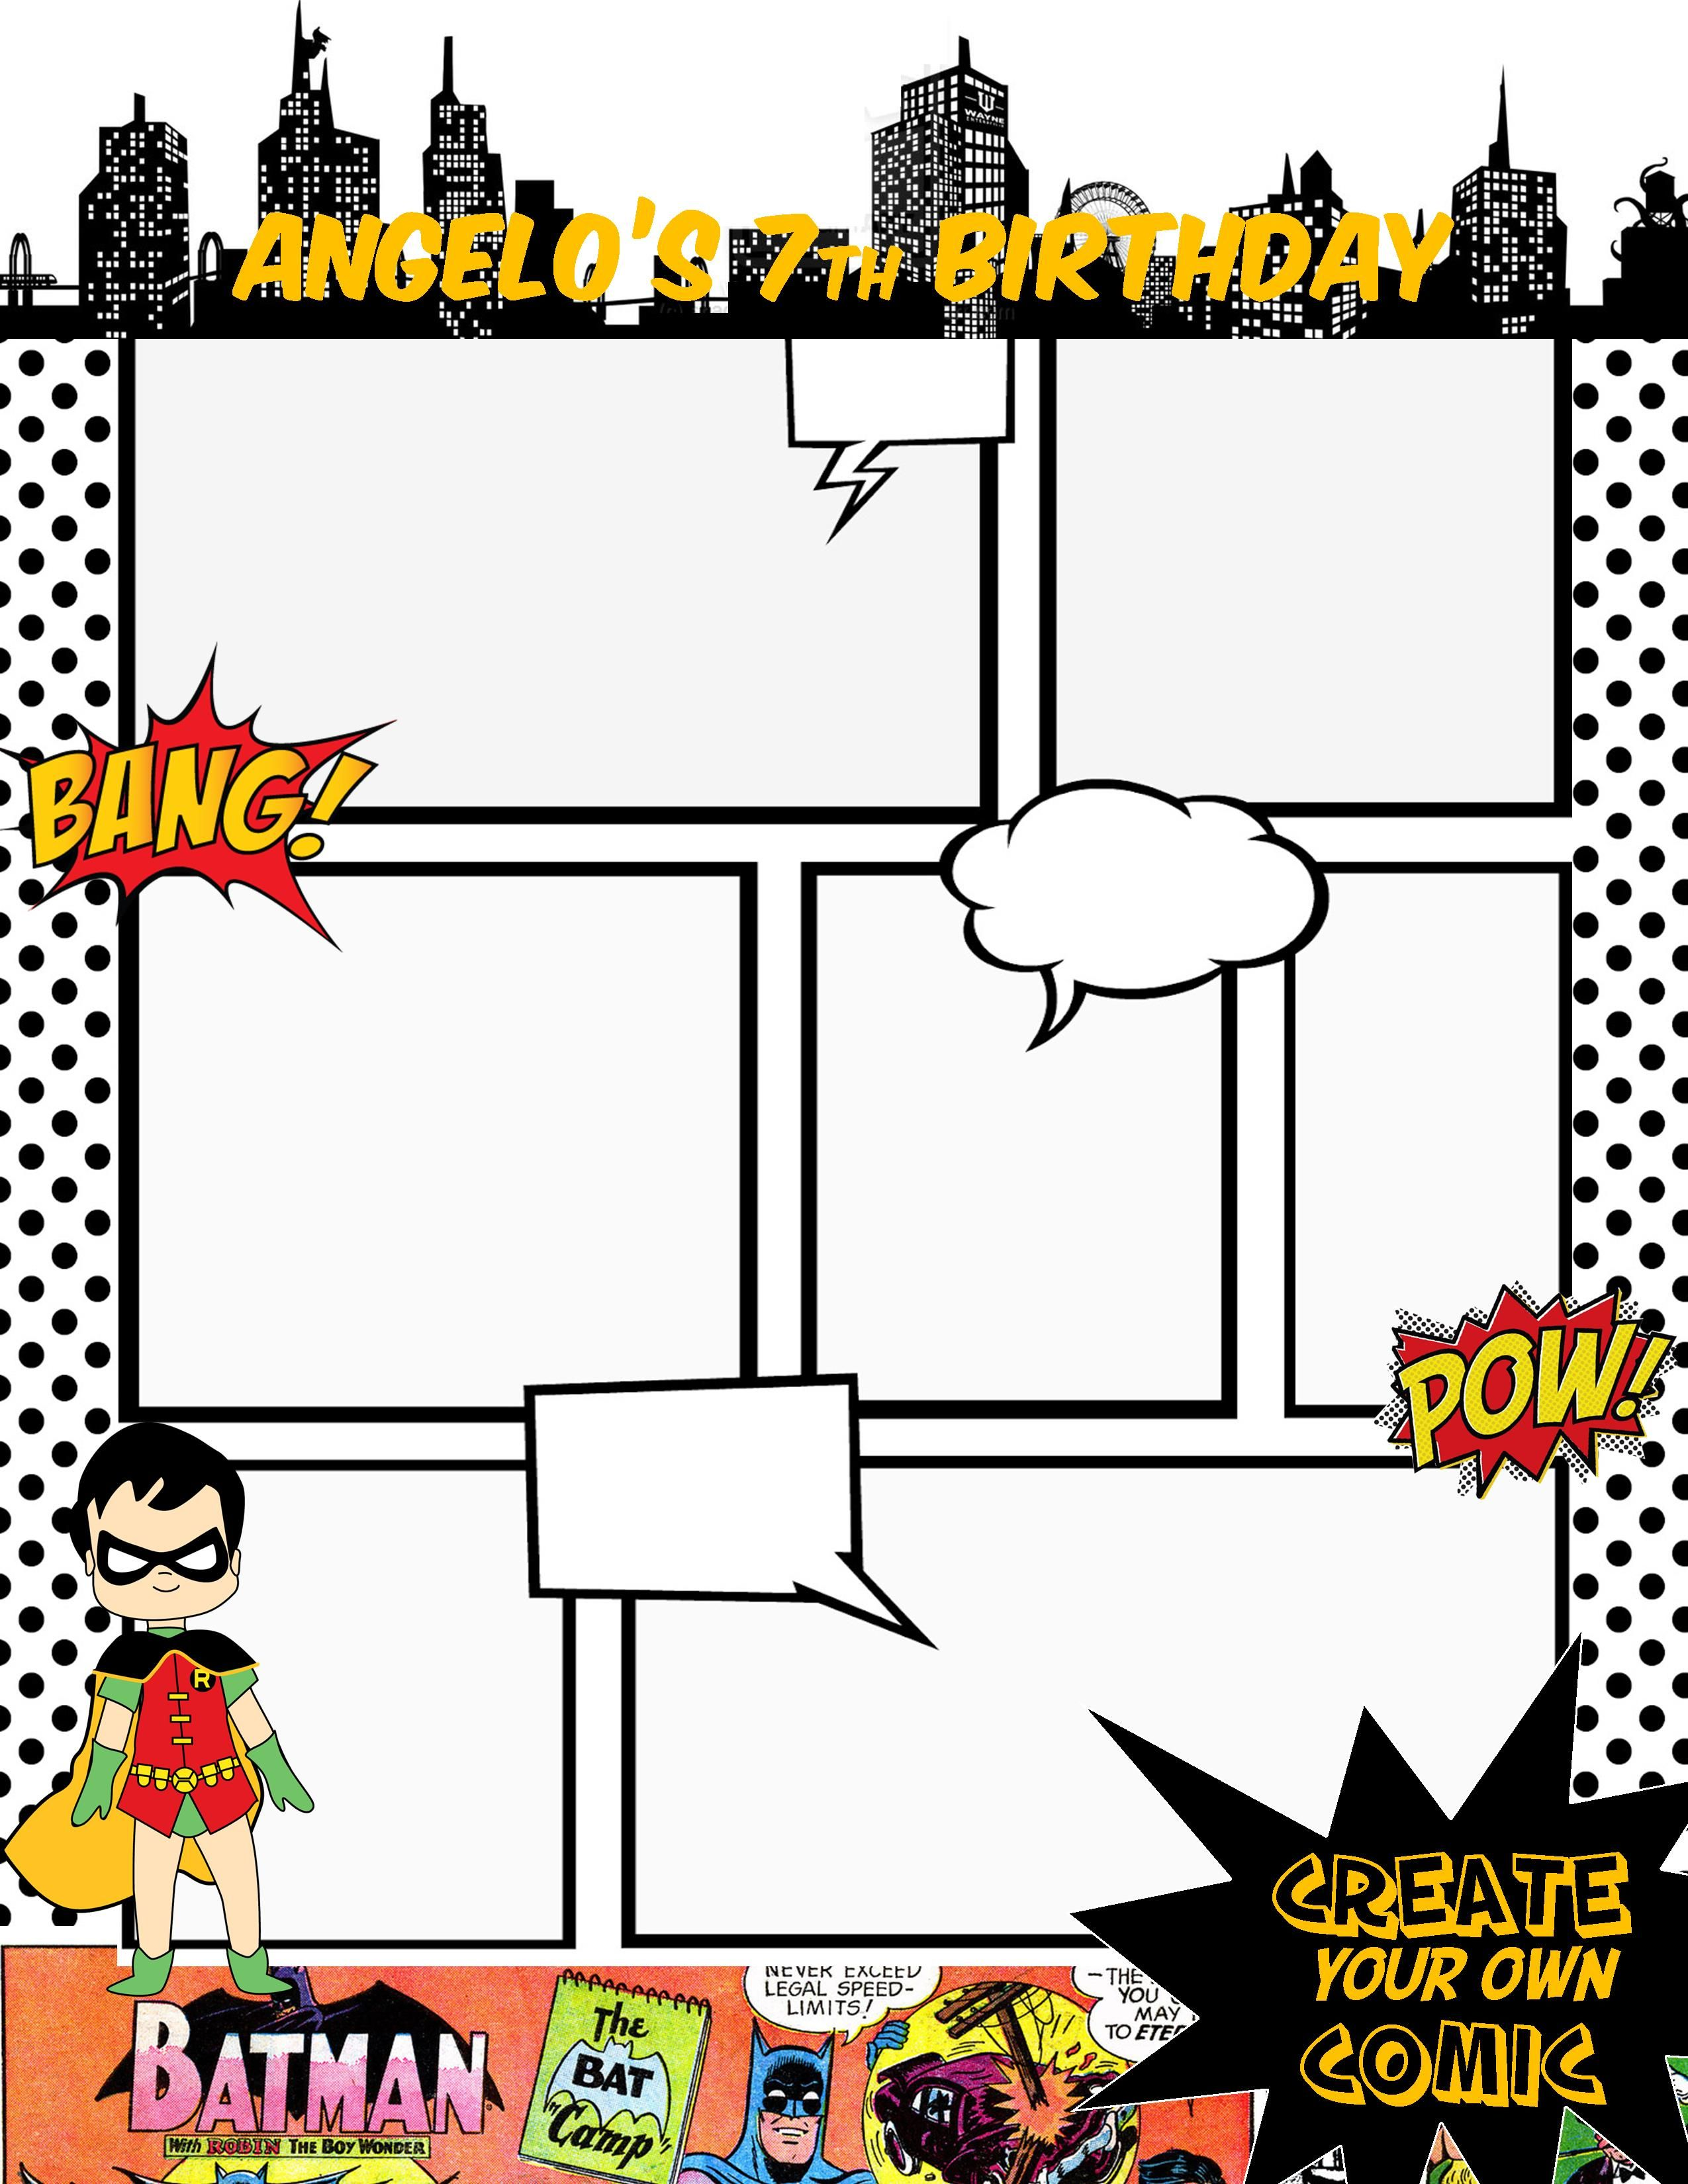 We Decided To Make Comic Book Pages For Kids To Draw Or